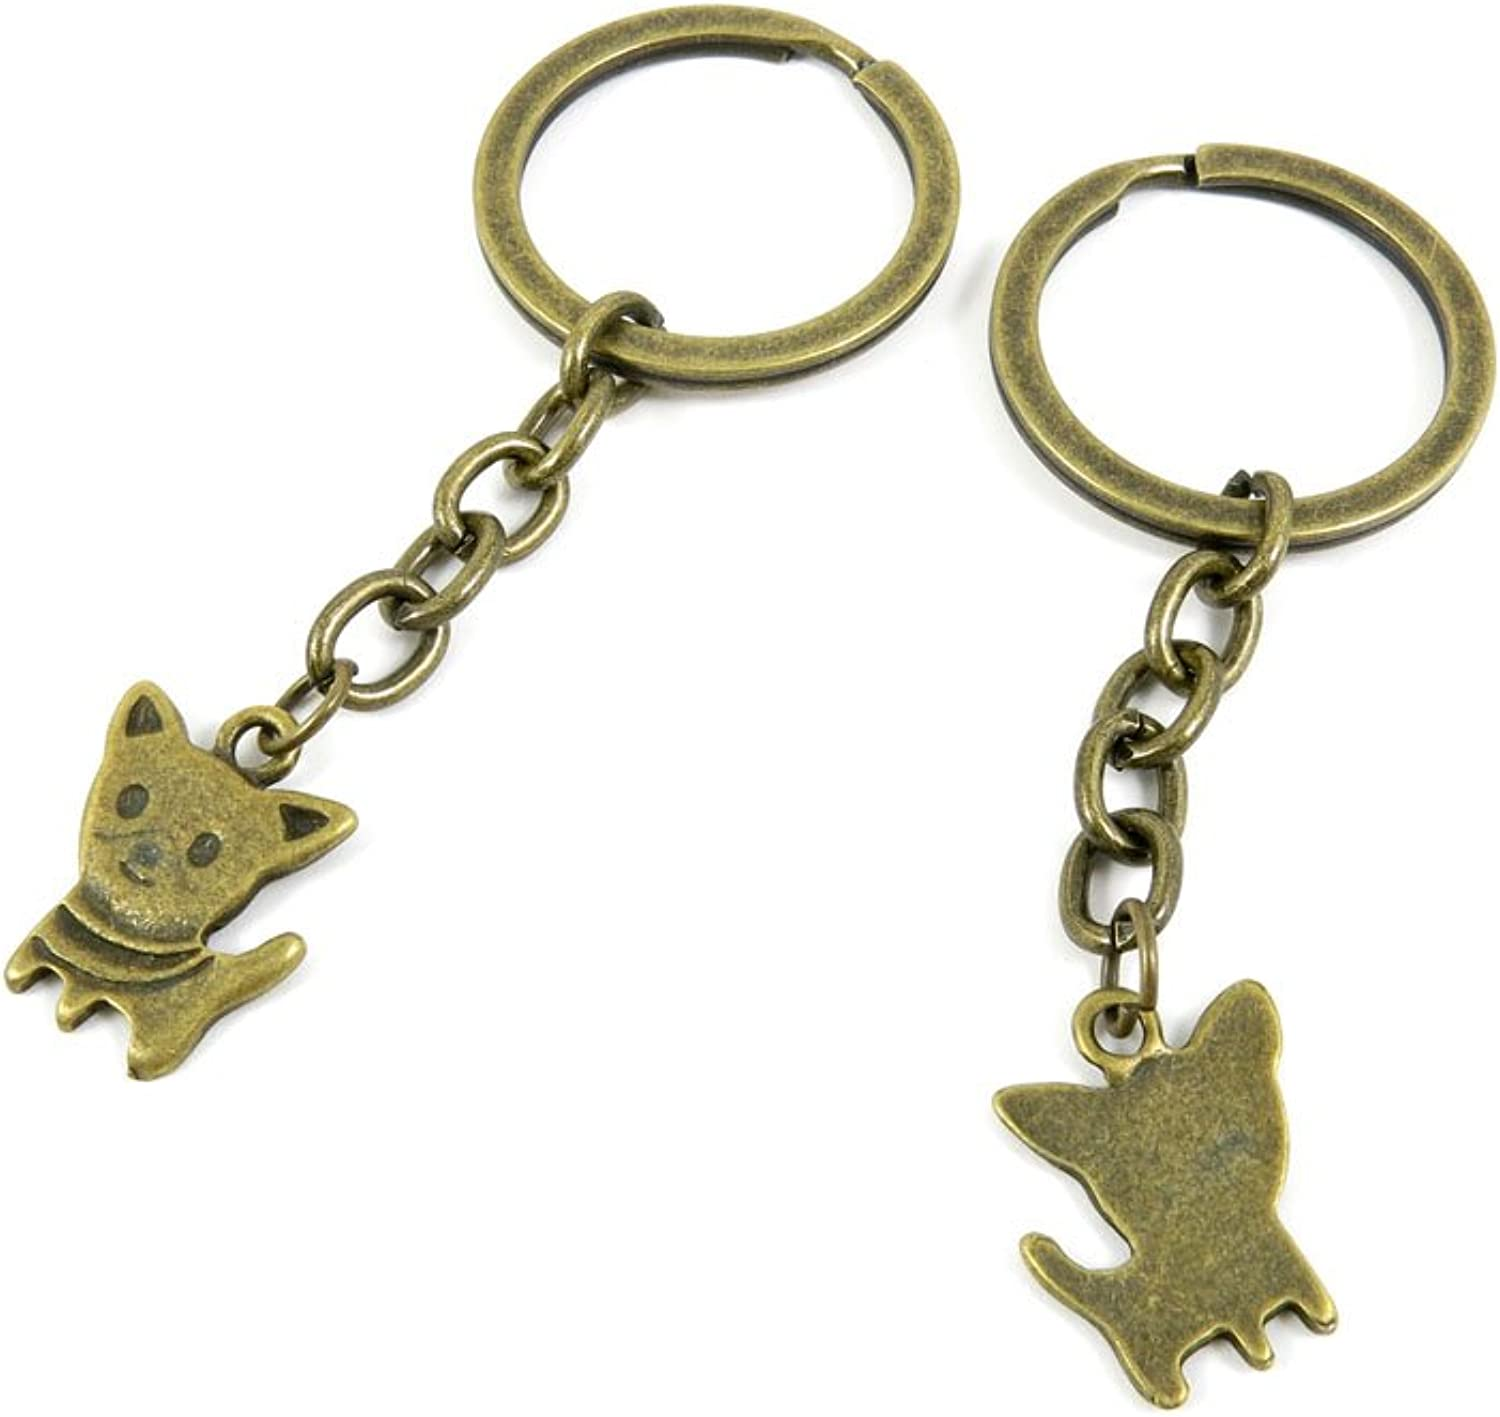 100 PCS Keyrings Keychains Key Ring Chains Tags Jewelry Findings Clasps Buckles Supplies X2CX3 Puppy Dog